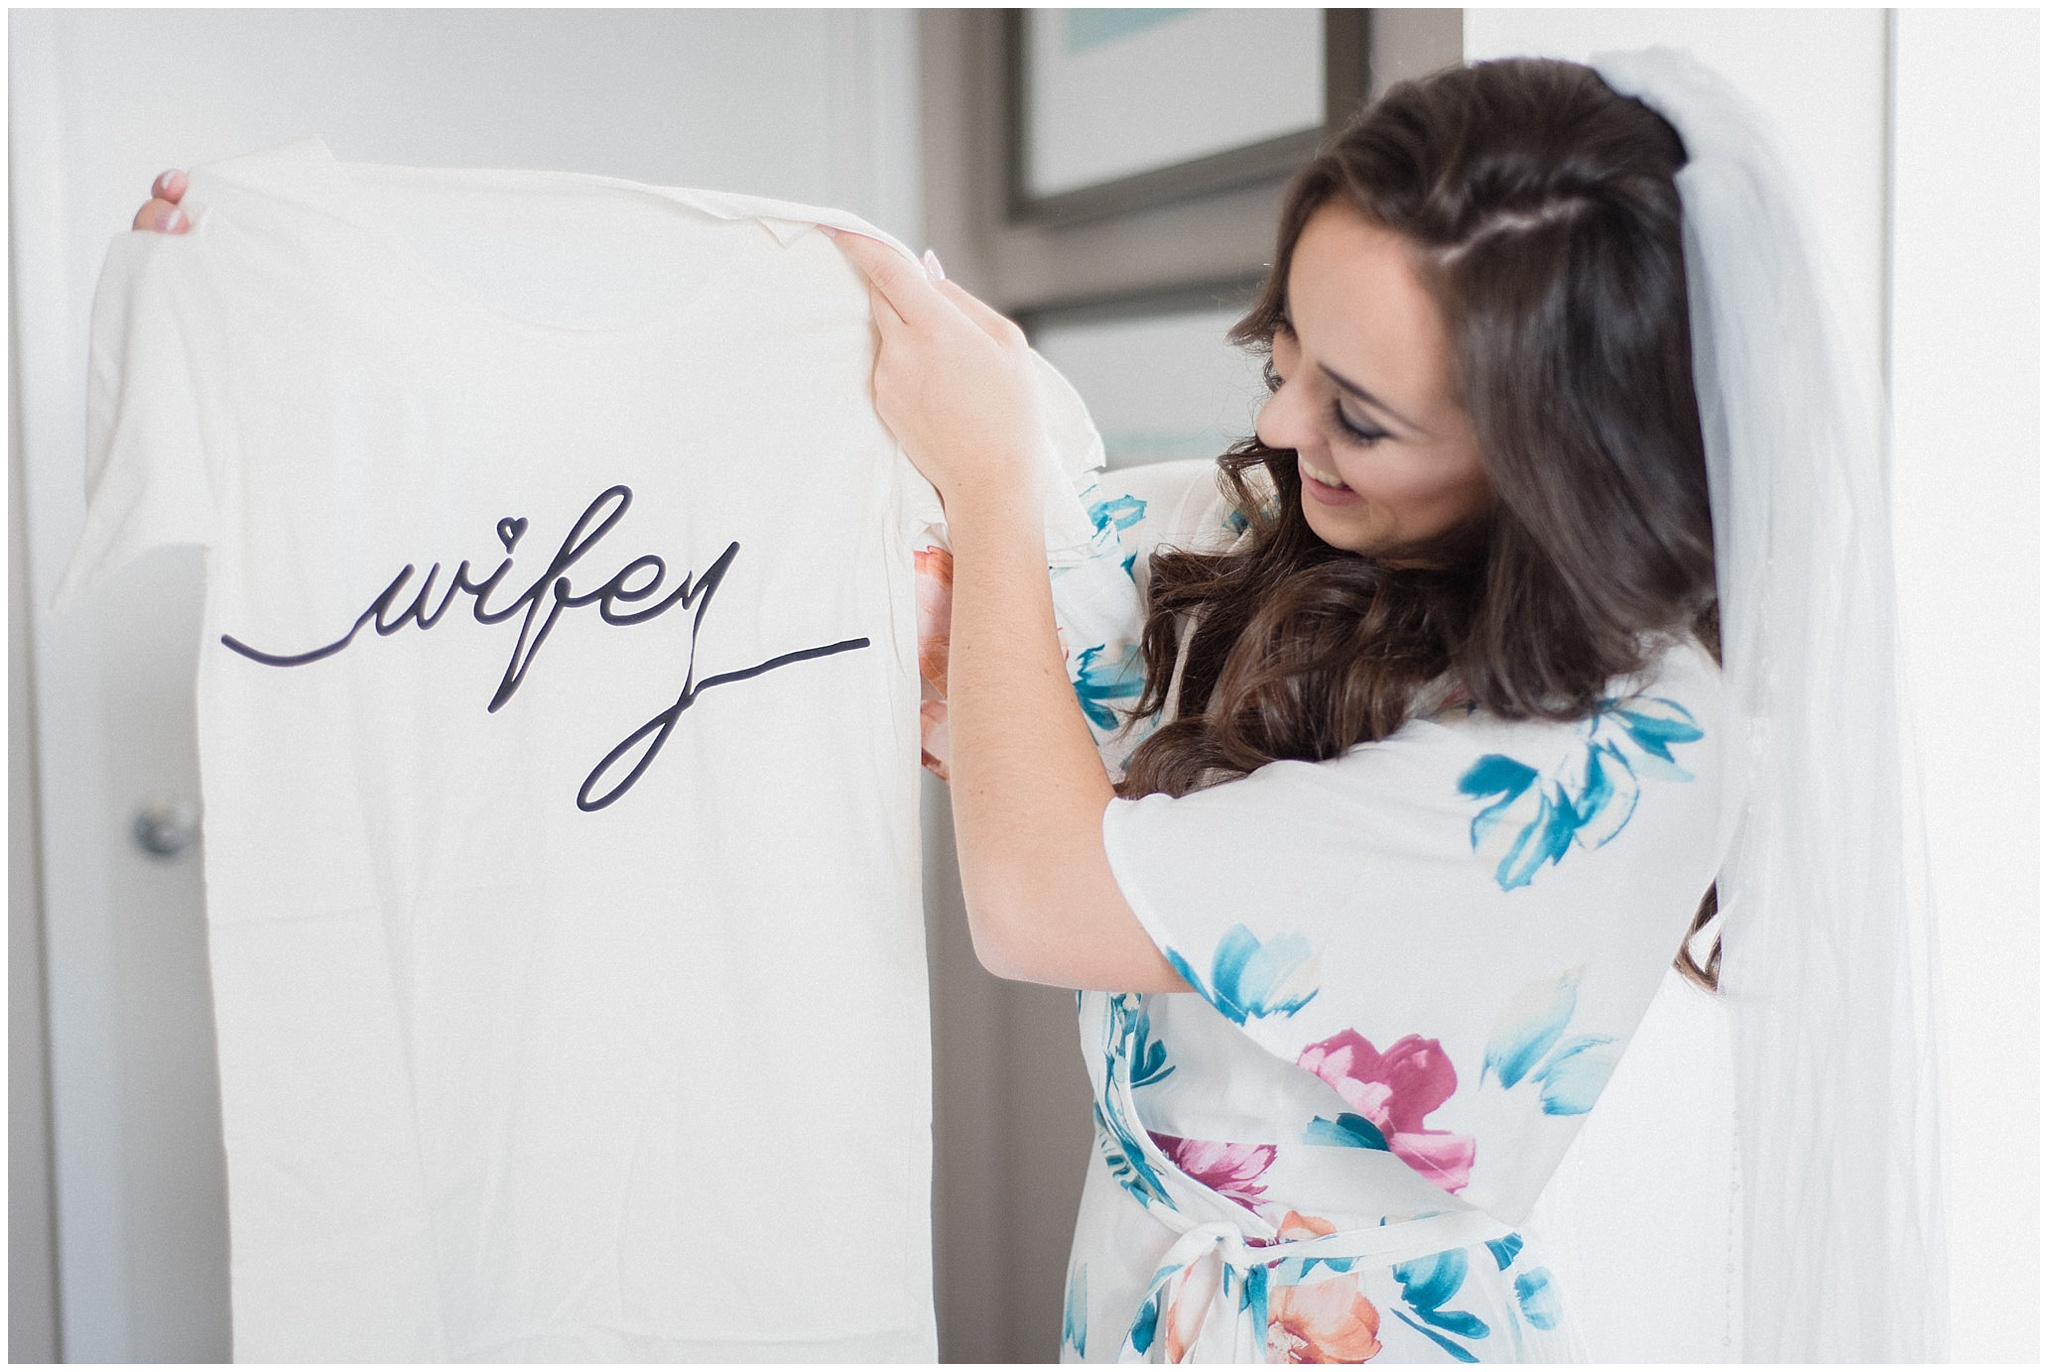 Wifey t-shirt | Distillery District wedding by Jenn Kavanagh Photography